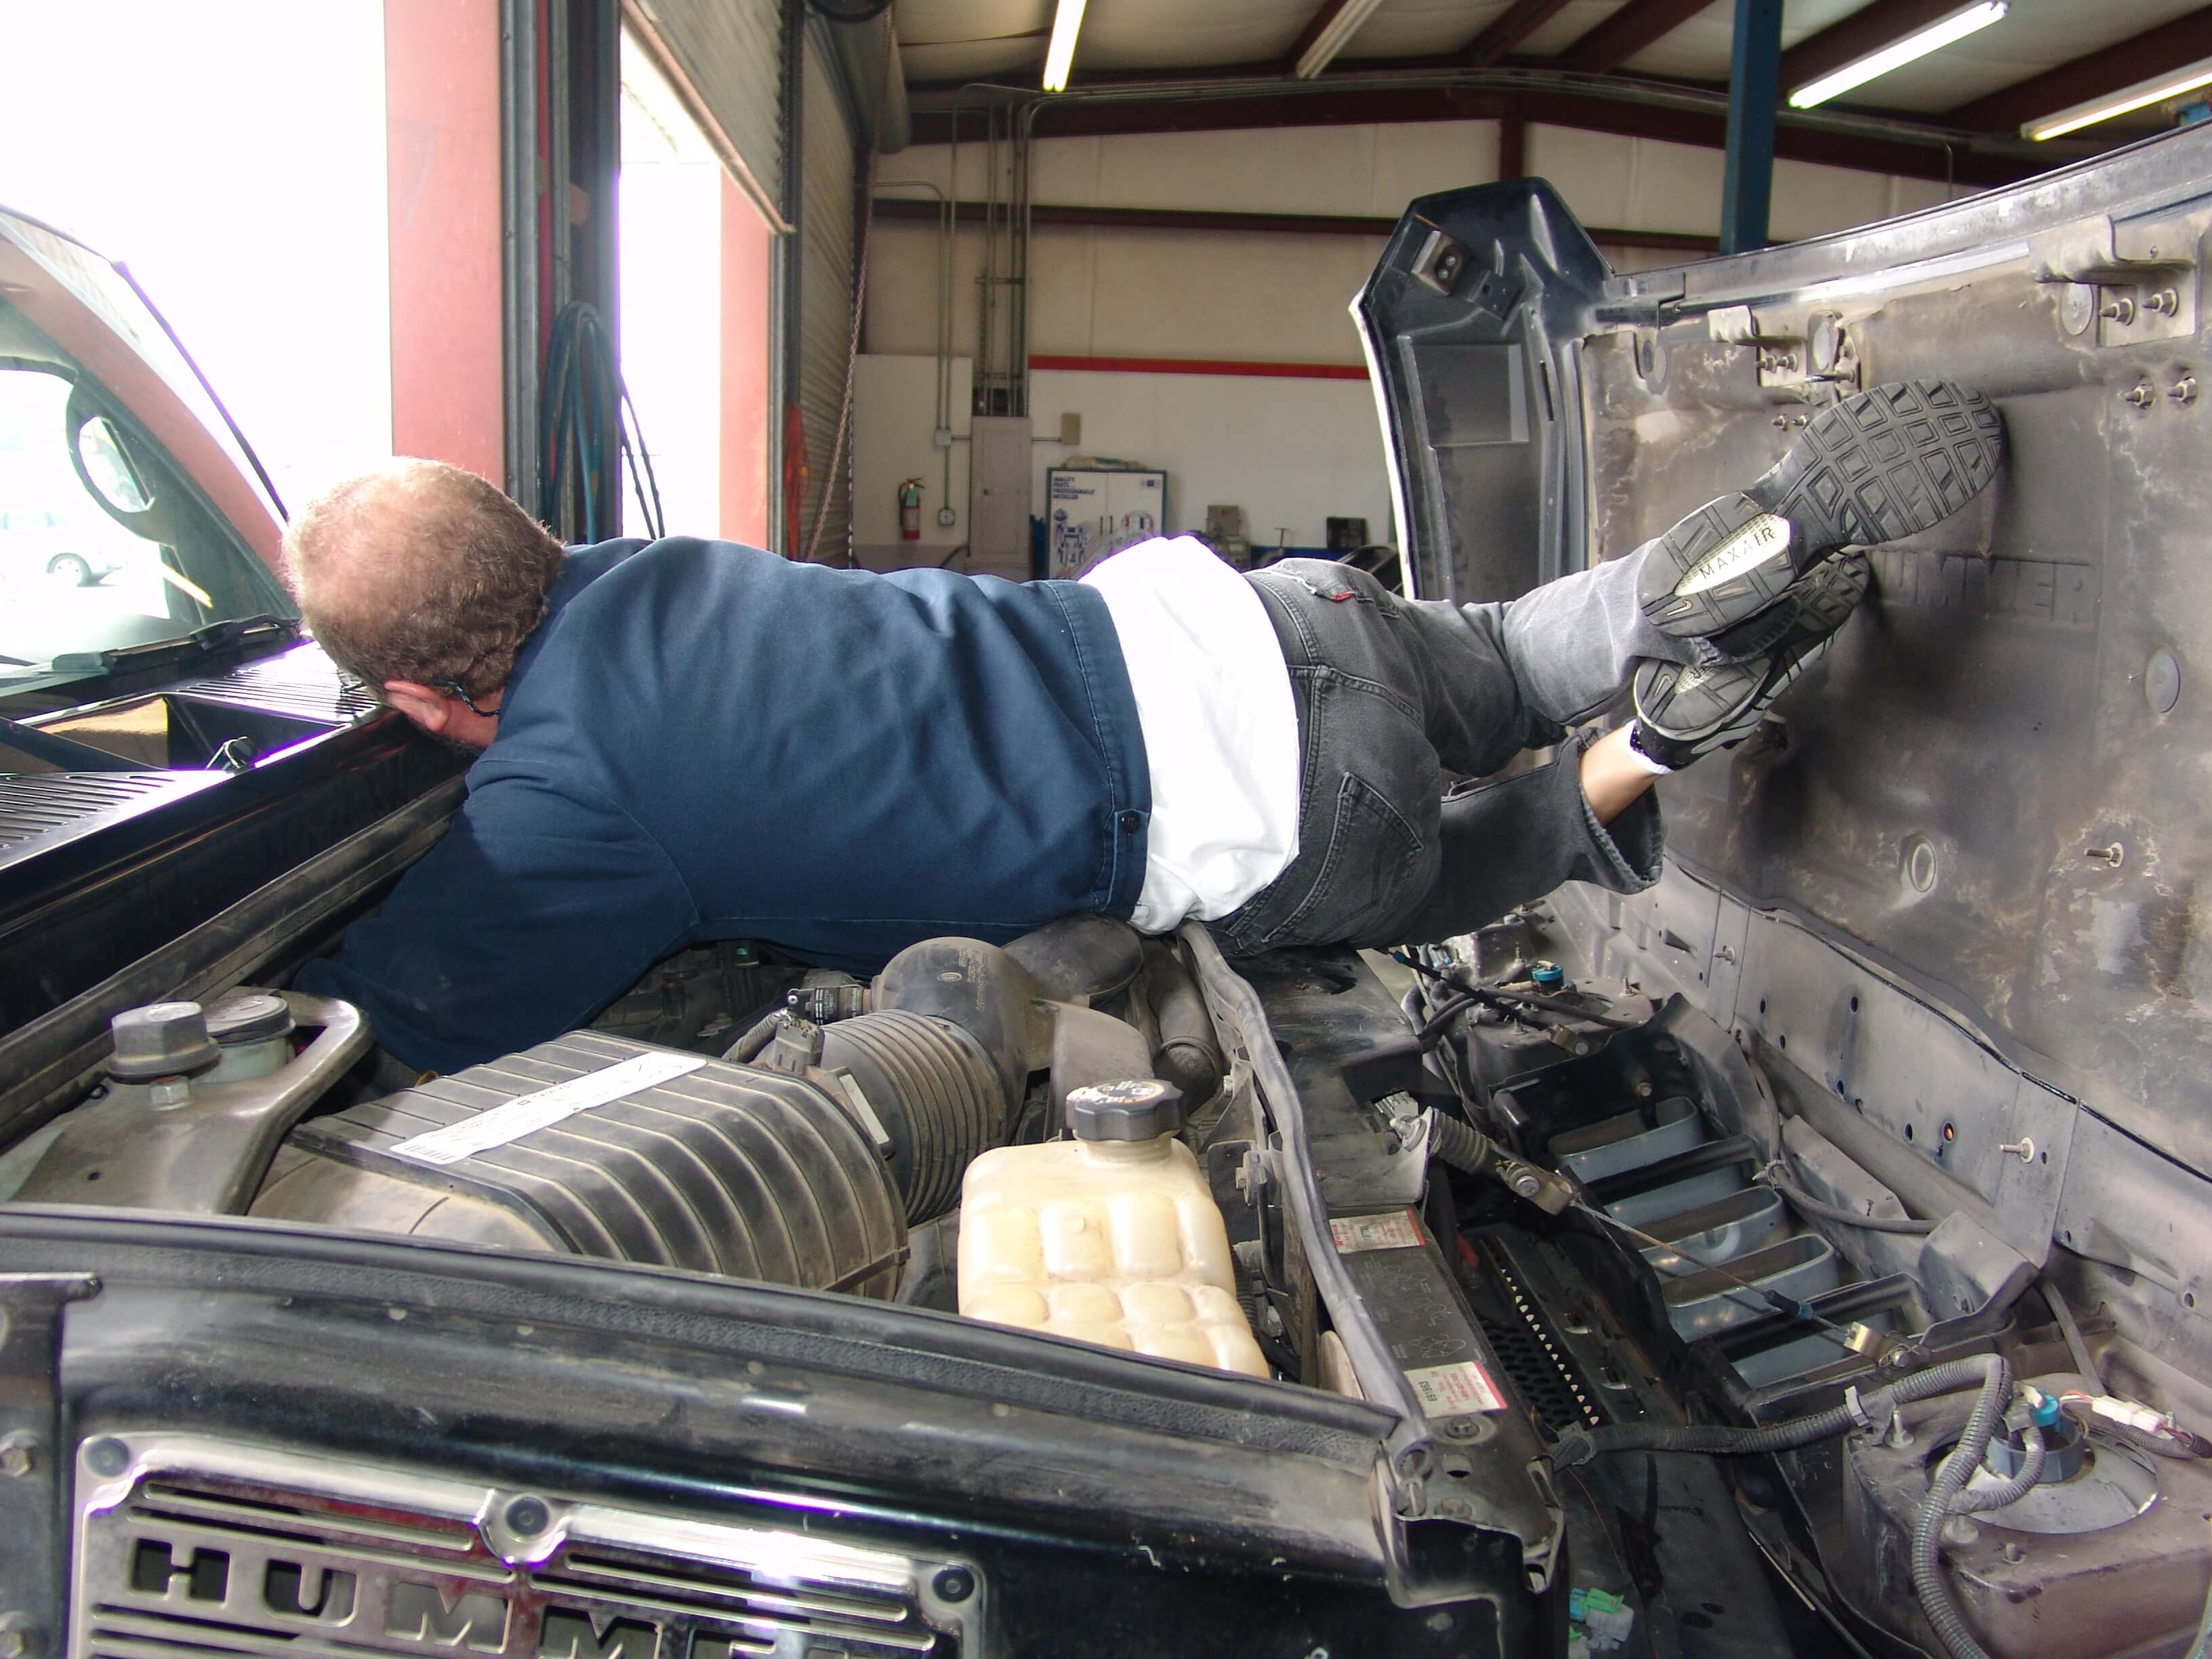 Sparkys Answers - Changing the Crank Sensor, Code P0335, On